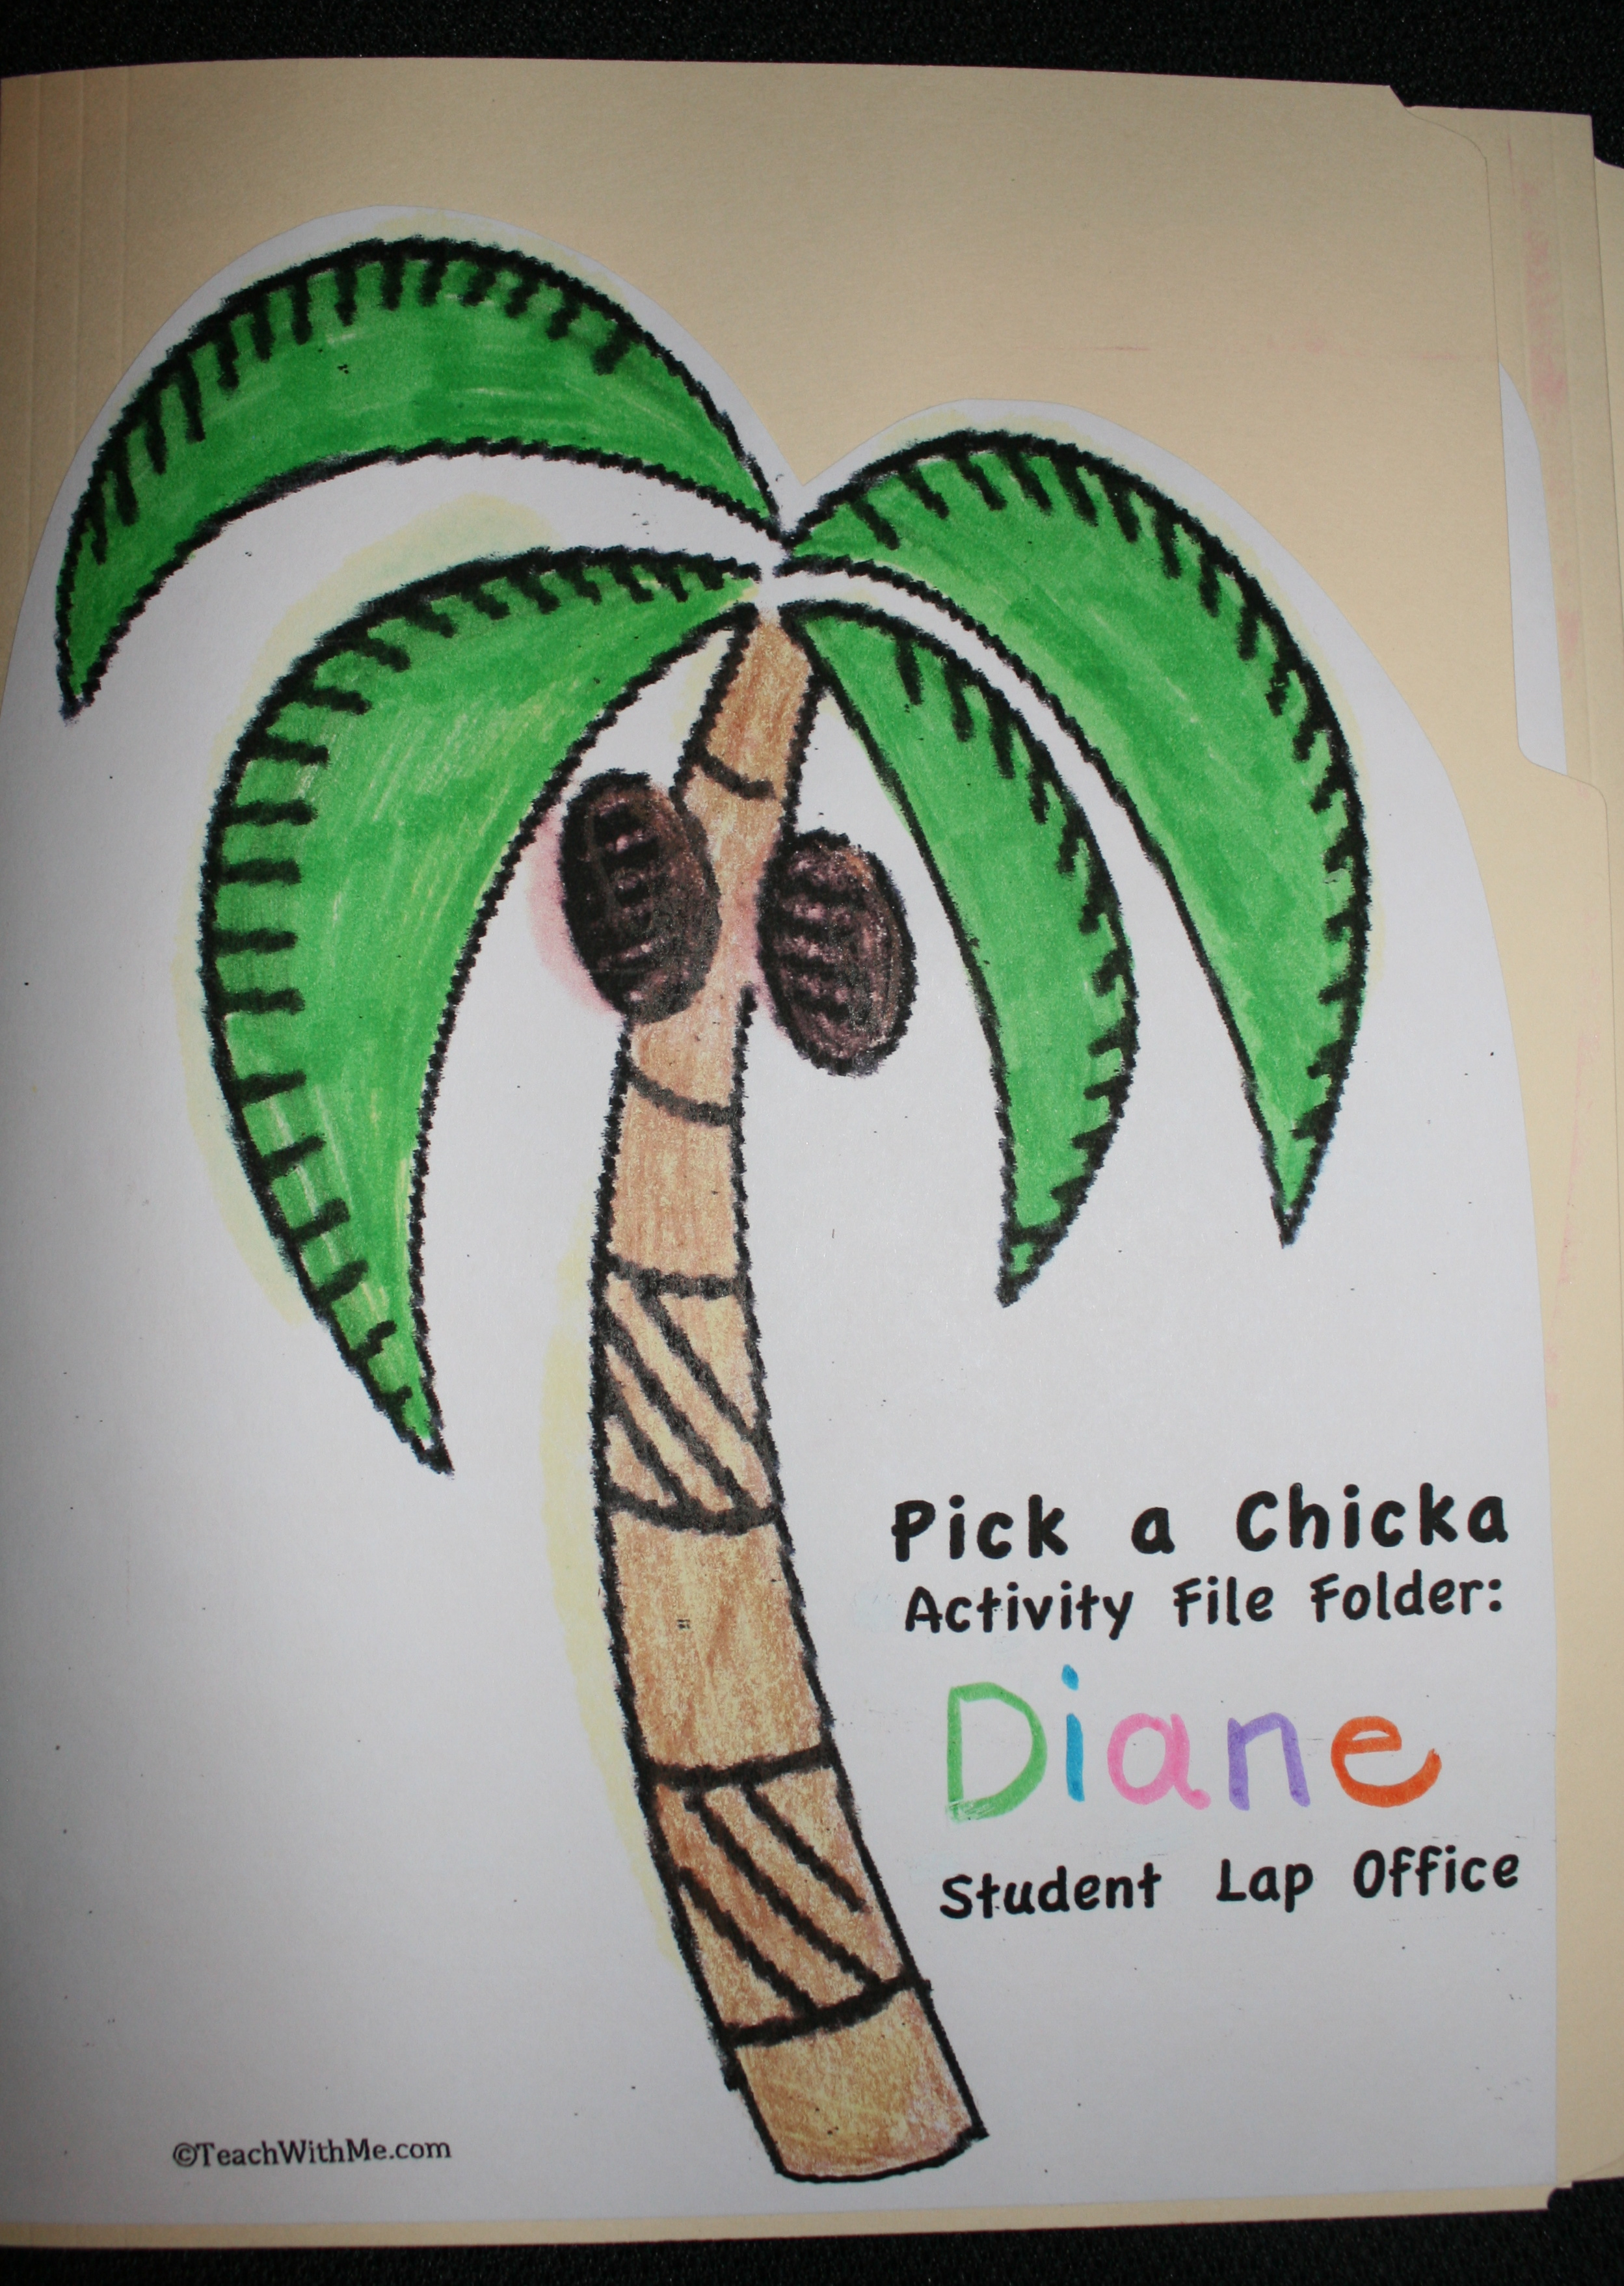 chicka boom ideas, ideas for back to school, ideas for the first day of school, lap folders, student offices, Chicka boom art projects, Chicka boom name tags,